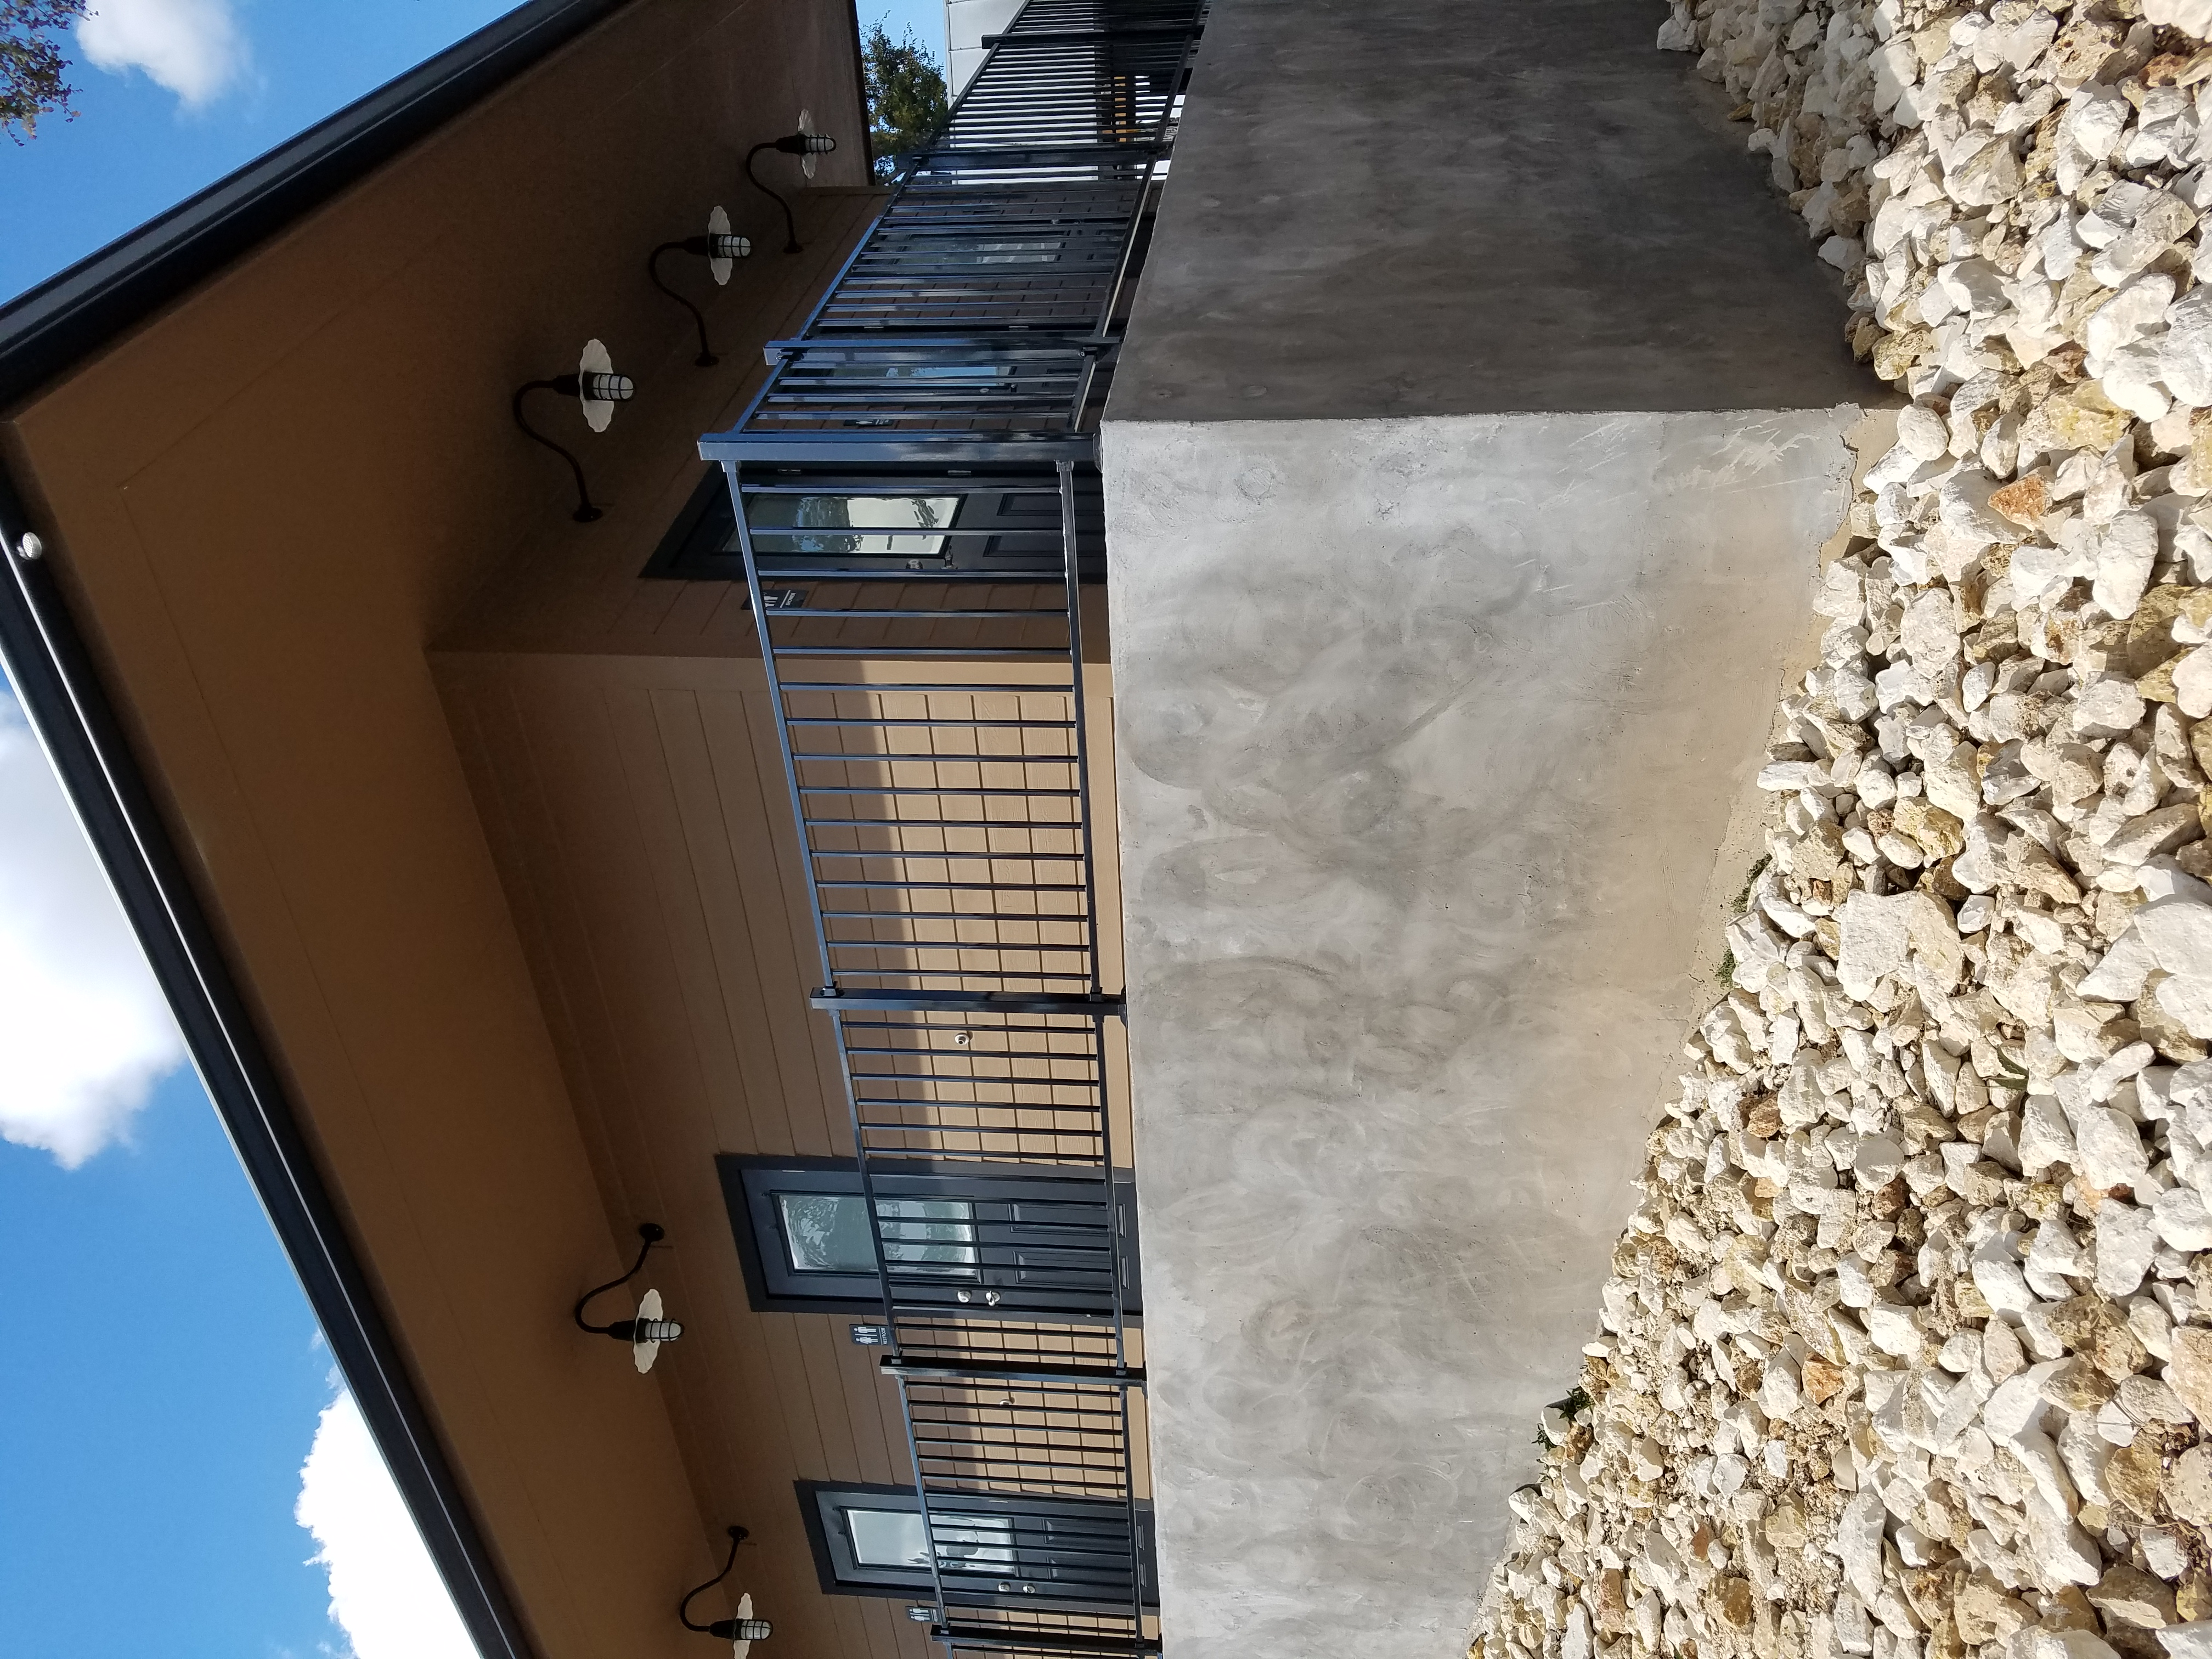 One of the buildings with shared bathroom facilities for village residents.